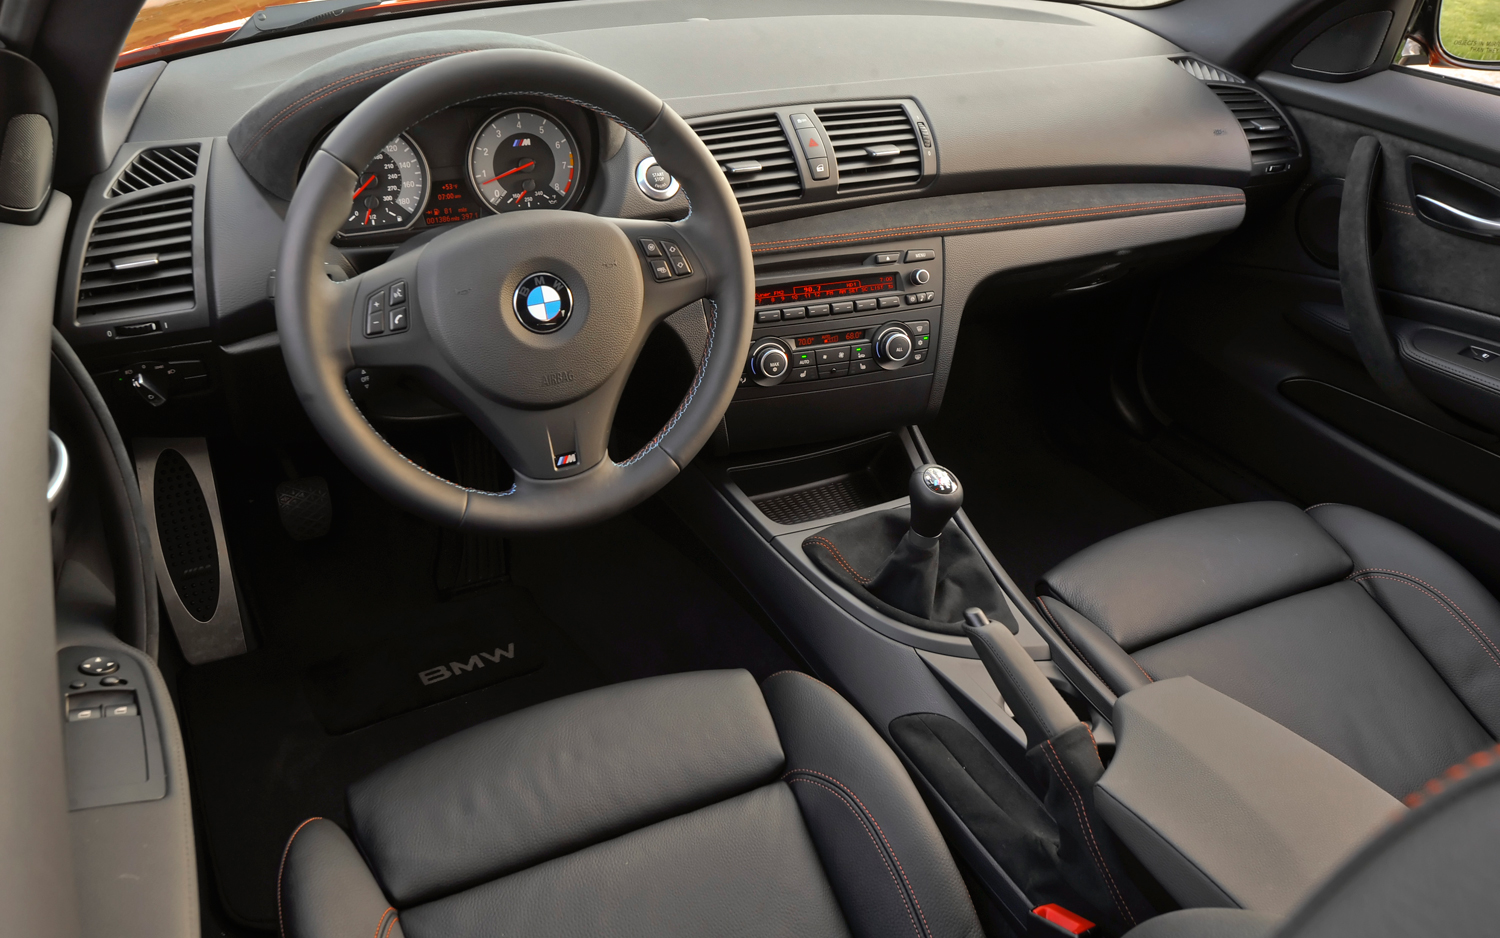 2011-BMW-1-series-M-cockpit.jpg